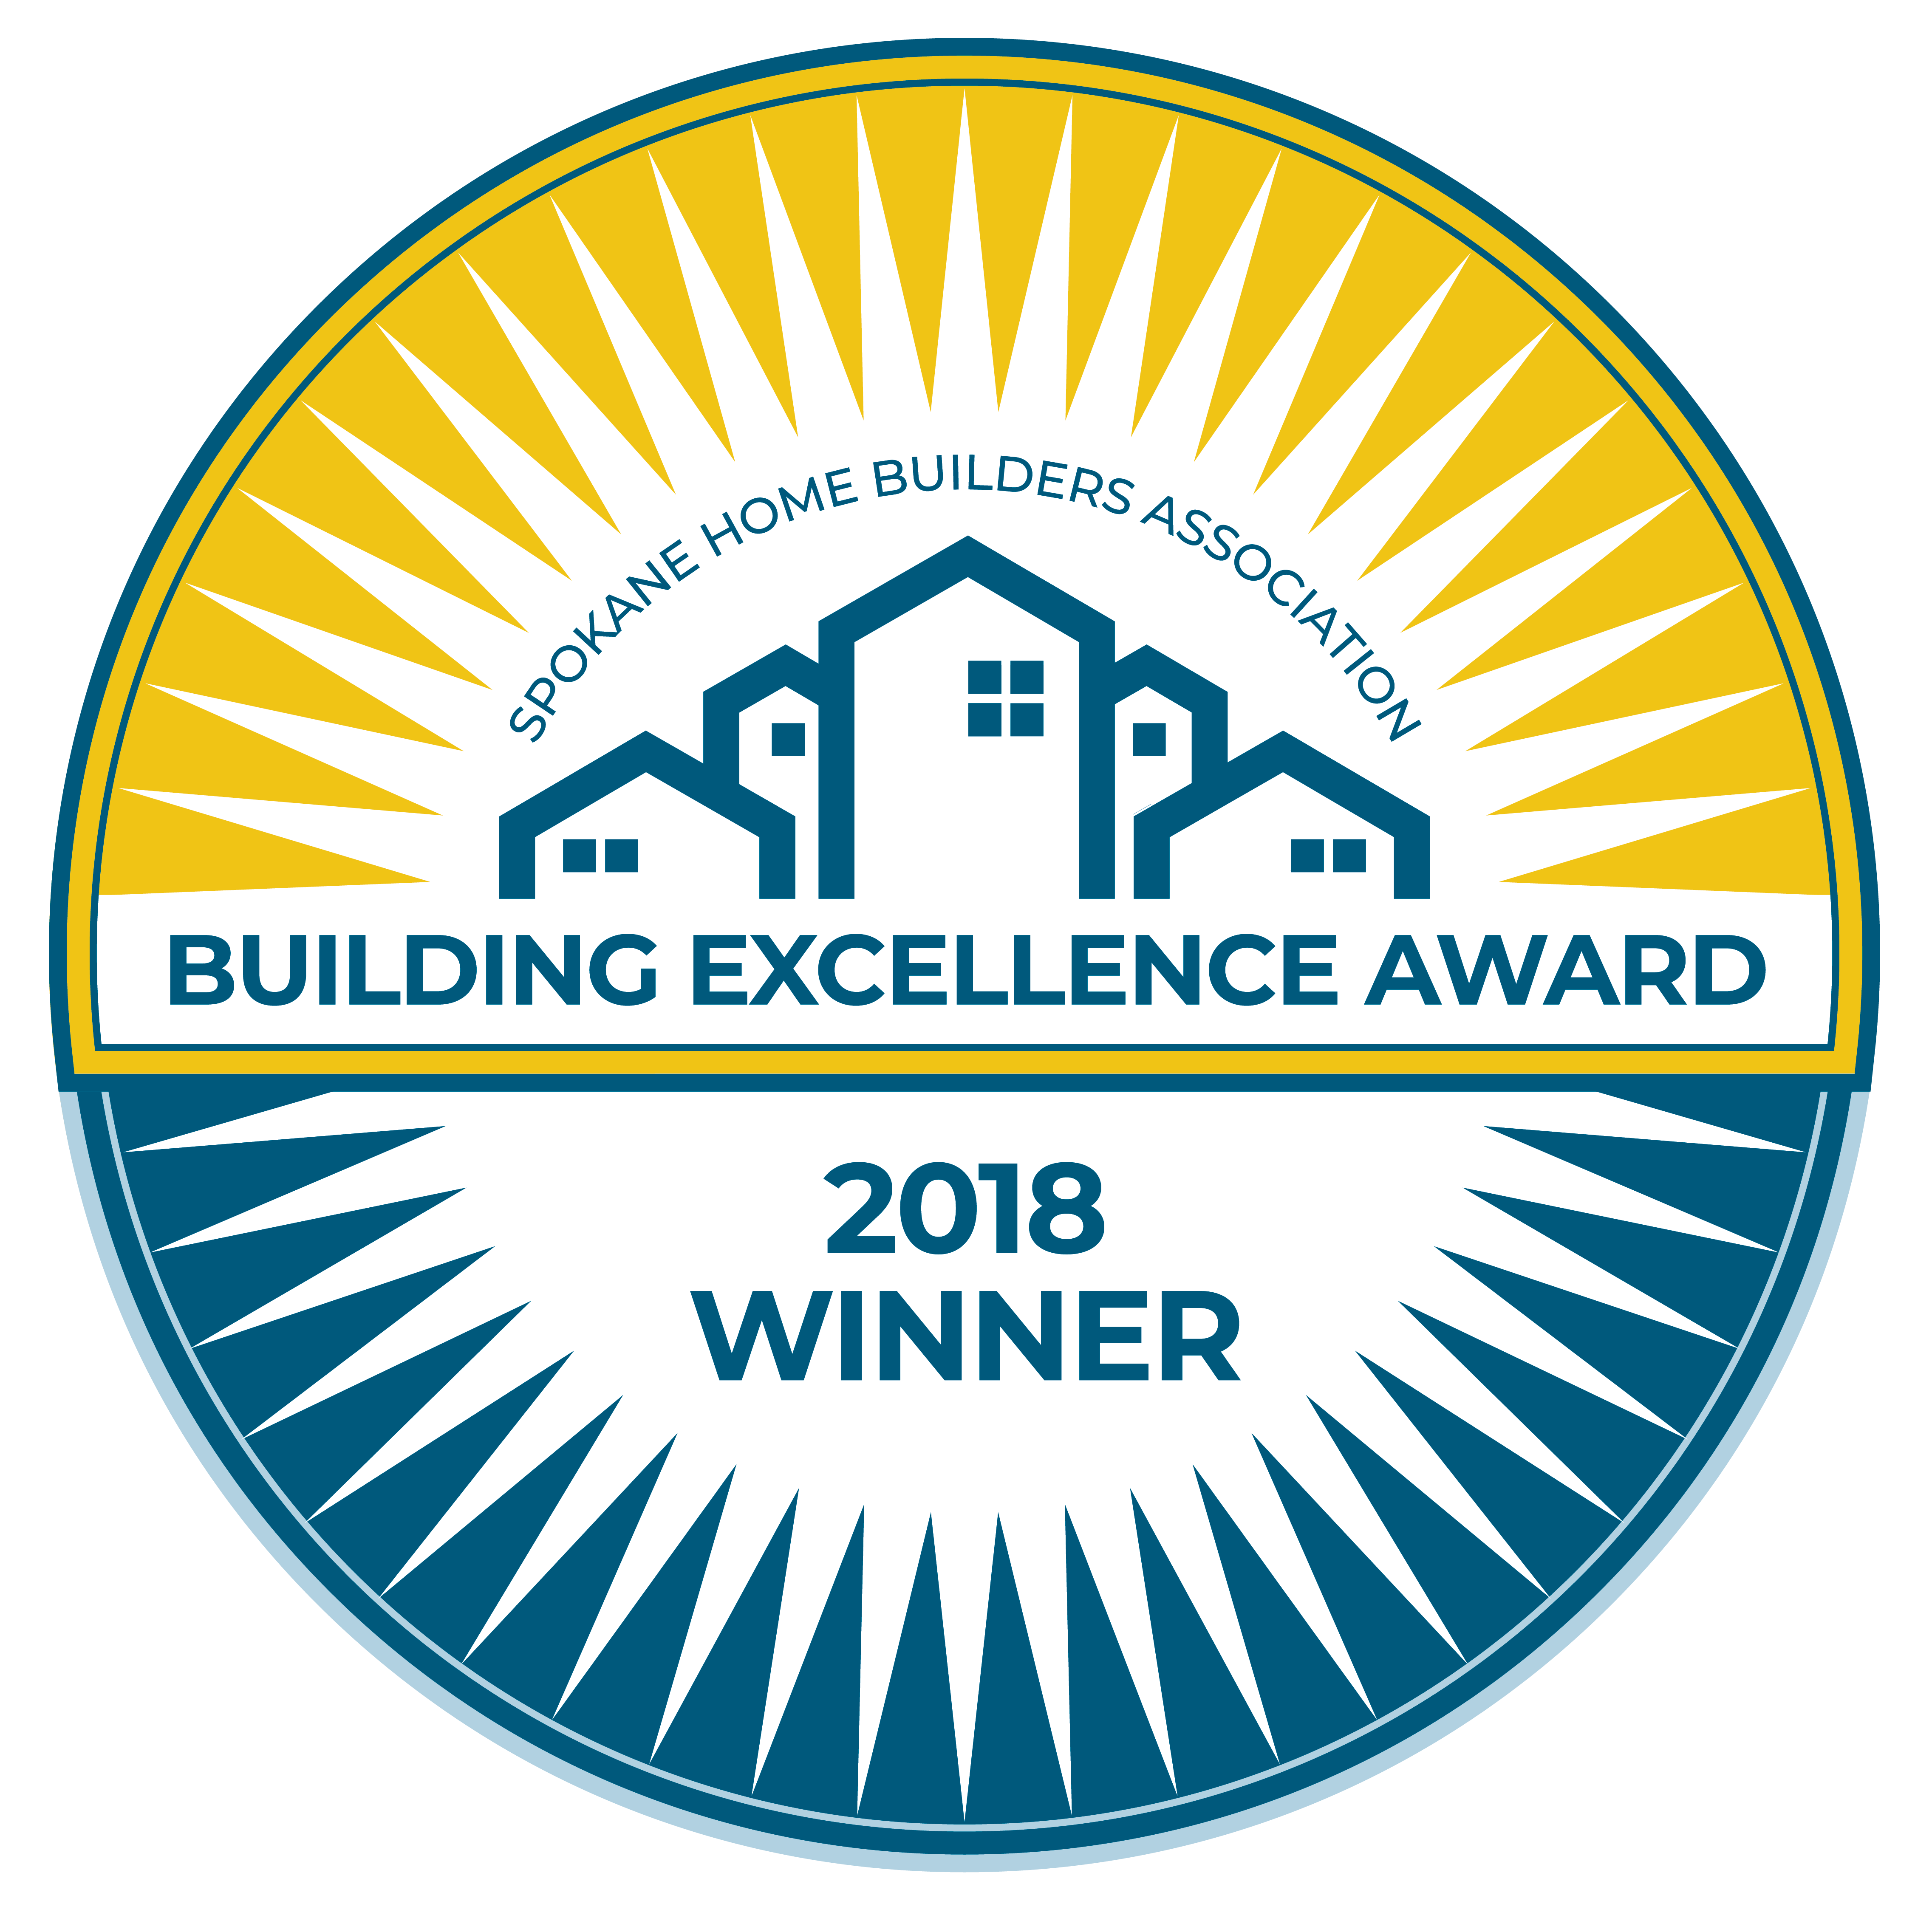 SHBA Building Excellence Award